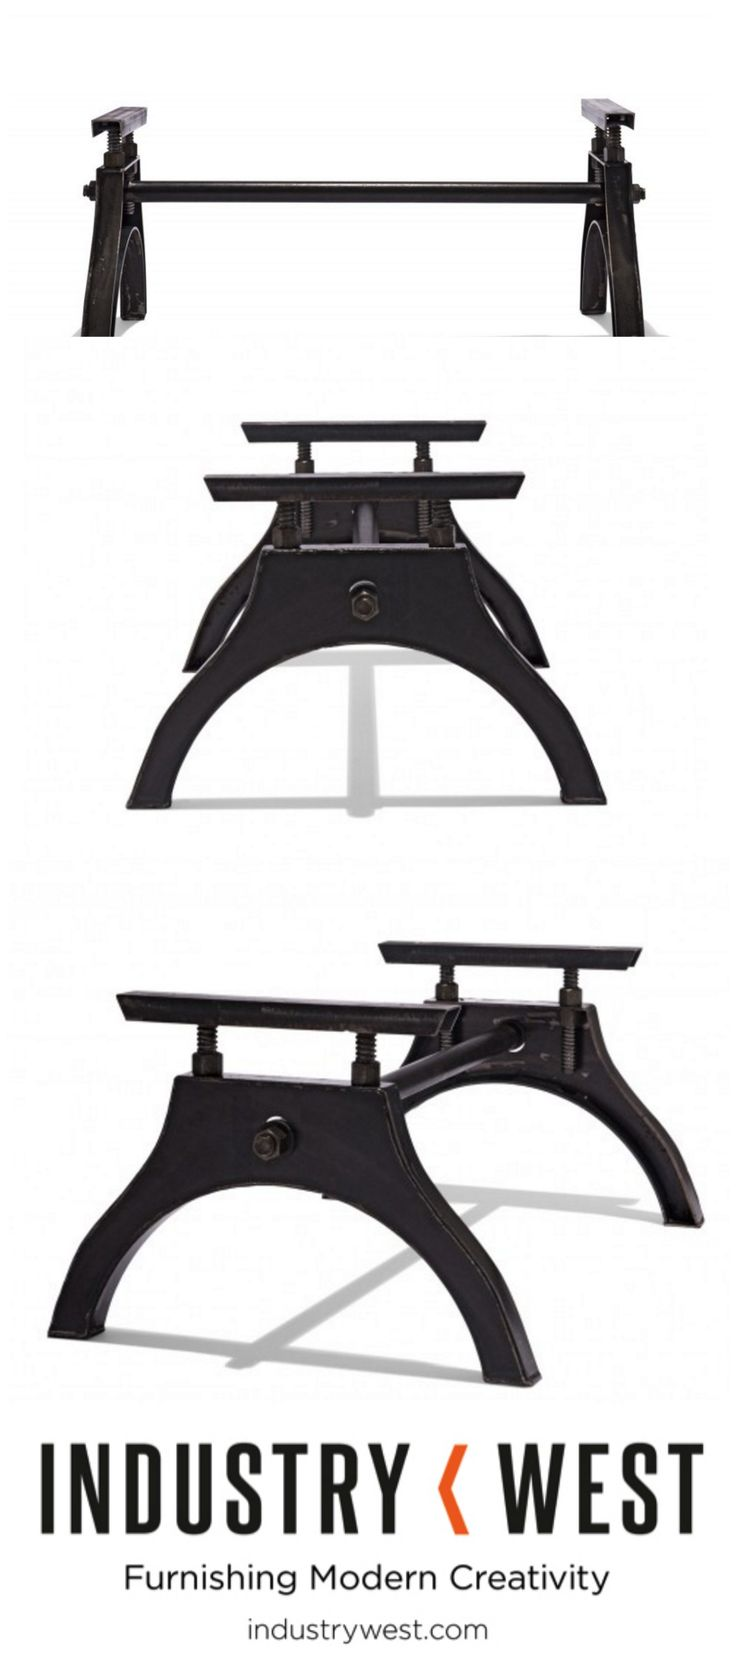 The Iron Horse Coffee Table Base is our companion piece to